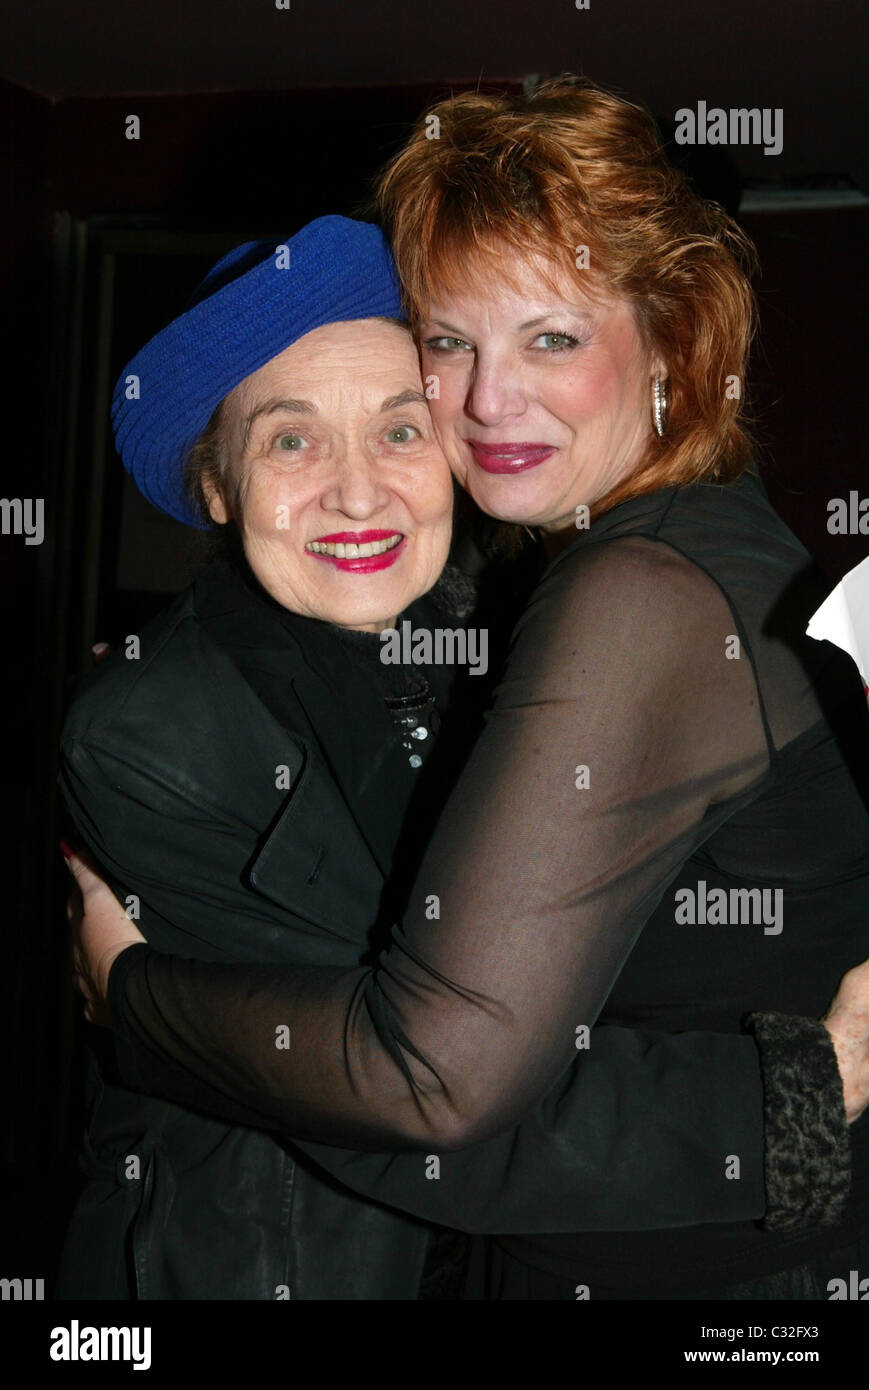 Julie Wilson and Devlin at opening night of 'Devlin The Places You Find Love' at Don't Tell Mama Cabaret New York Stock Photo